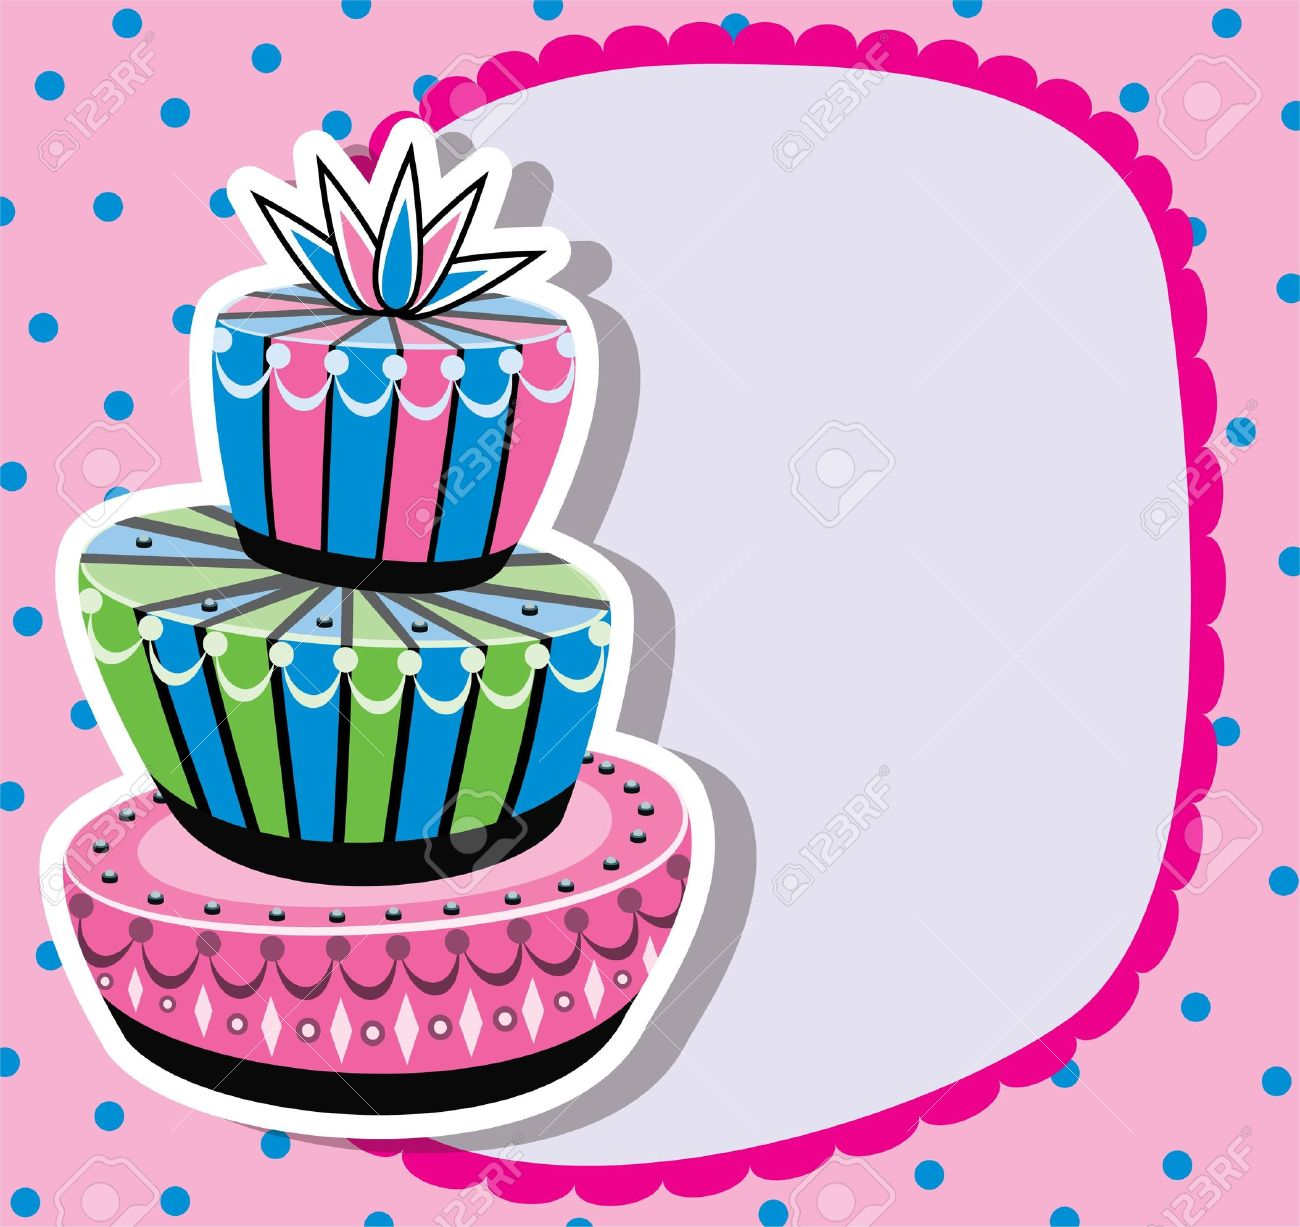 birthday cake borders ; 10476636-card-with-birthday-cake-and-copy-space